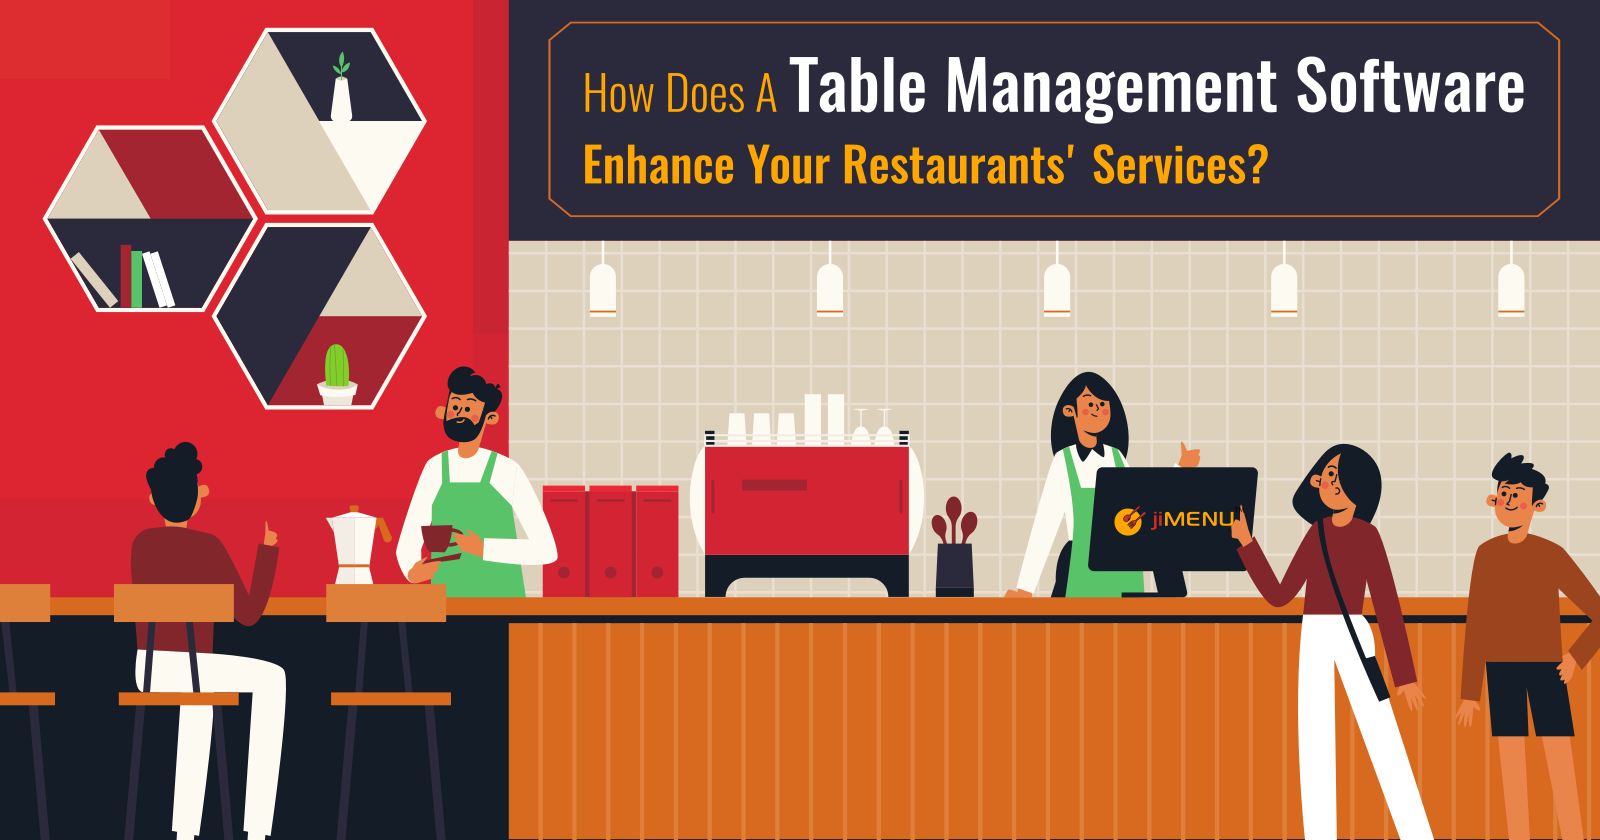 How Does A Table Management Software Enhance Your Restaurants' Services?